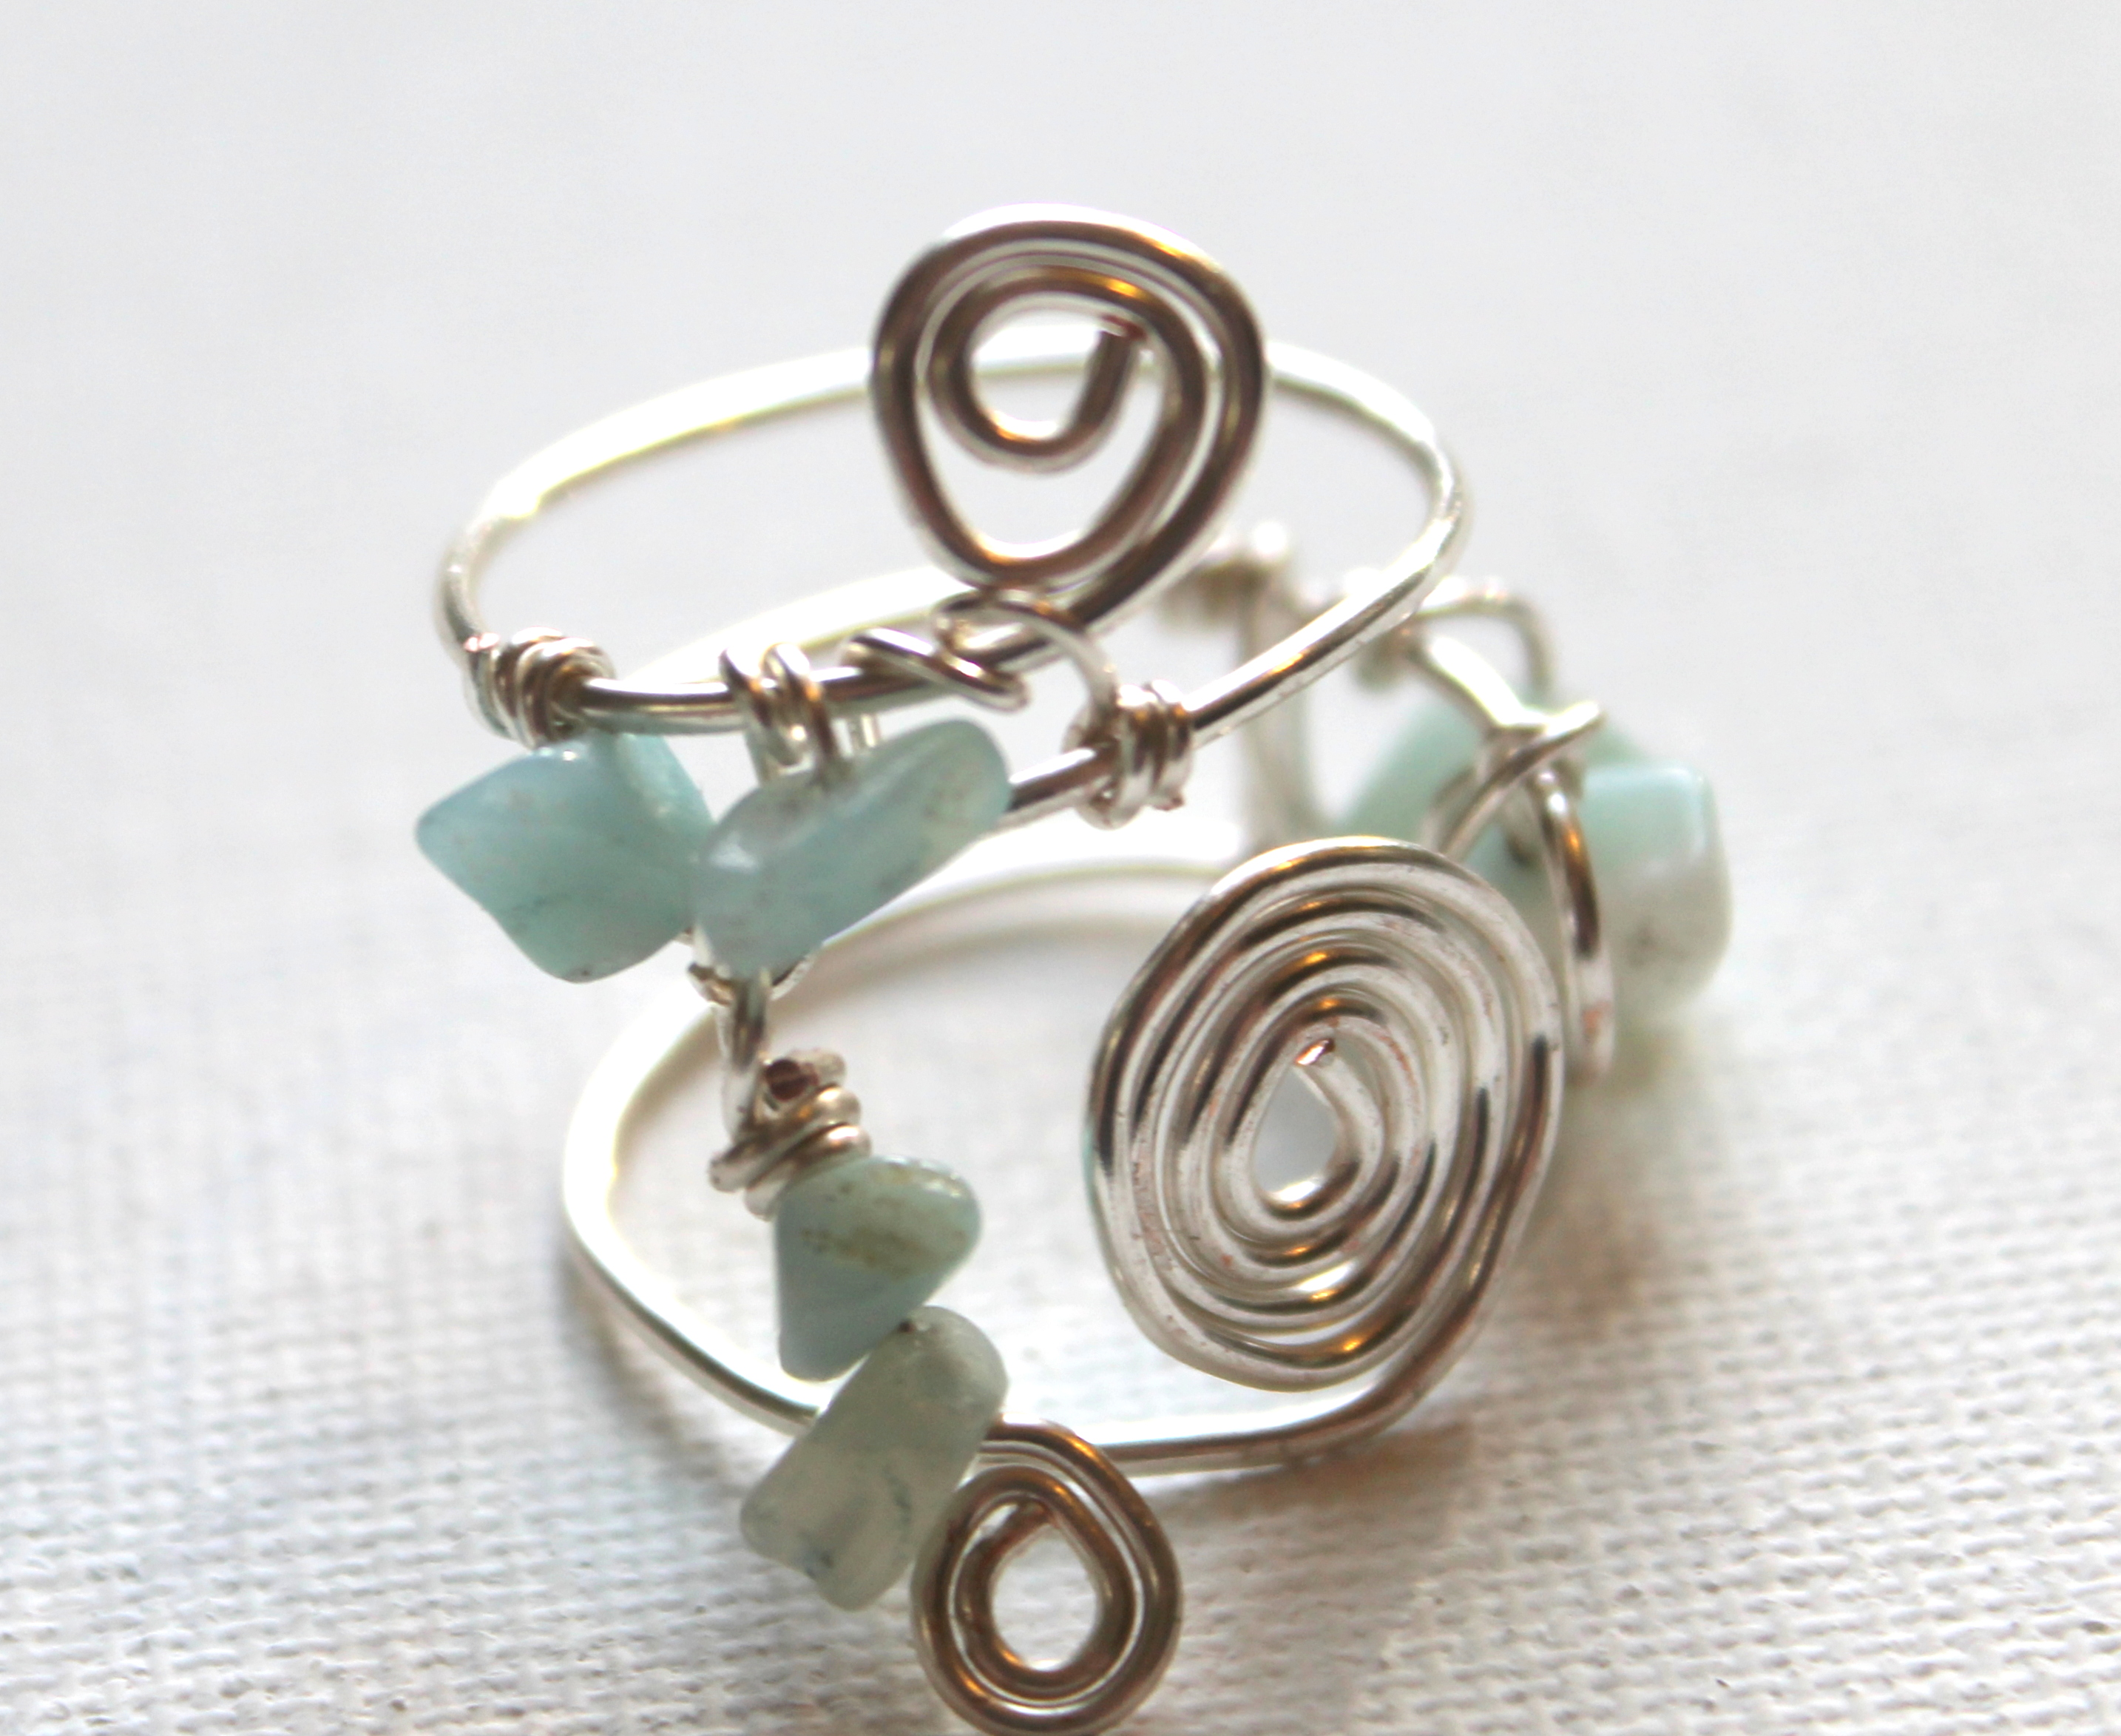 Wire Wrap Jewelry Patterns Interesting Inspiration Design